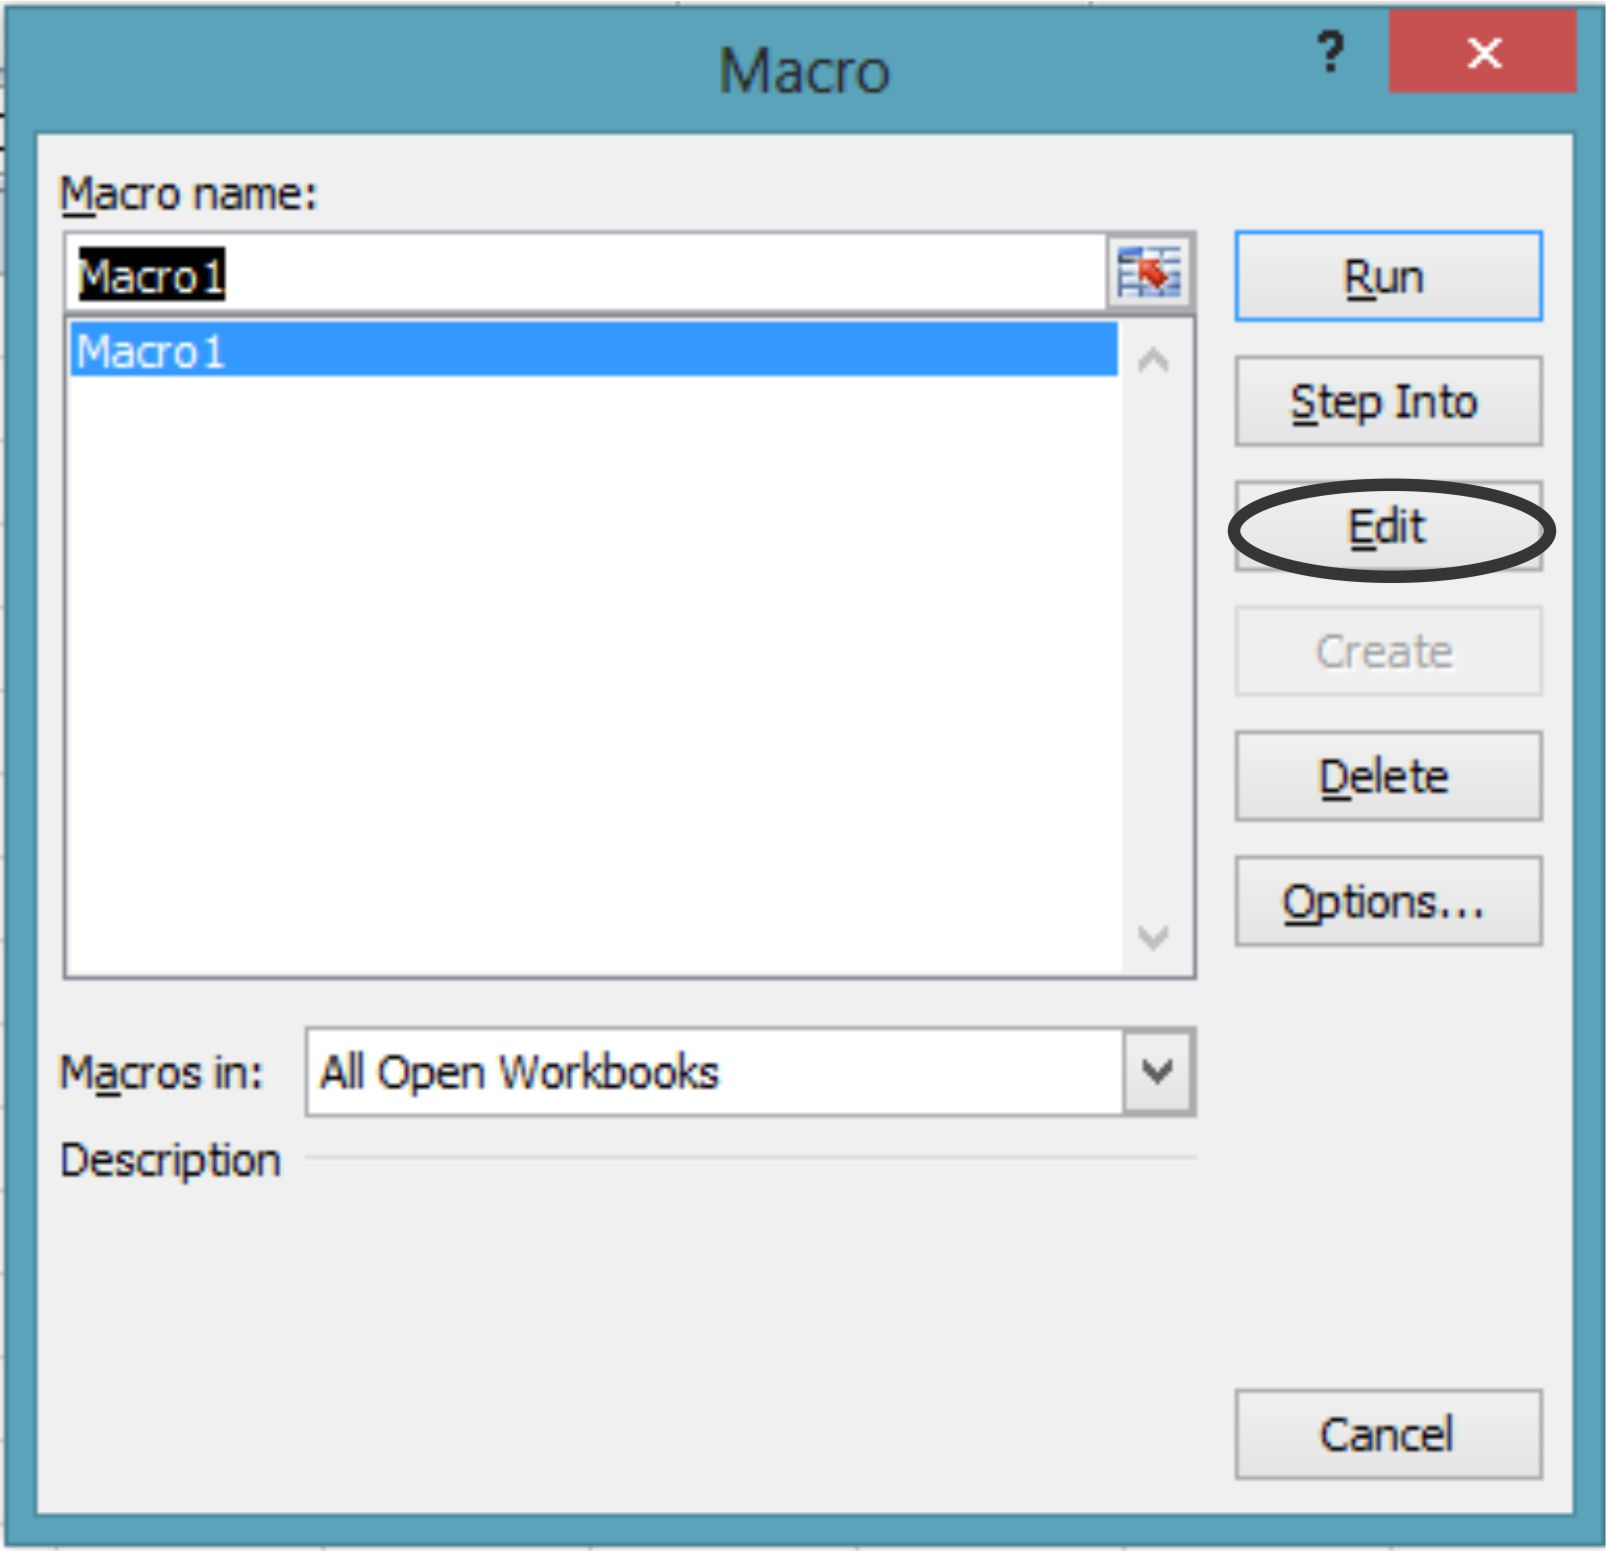 How To Edit And Delete Macros In Excel Wizapps